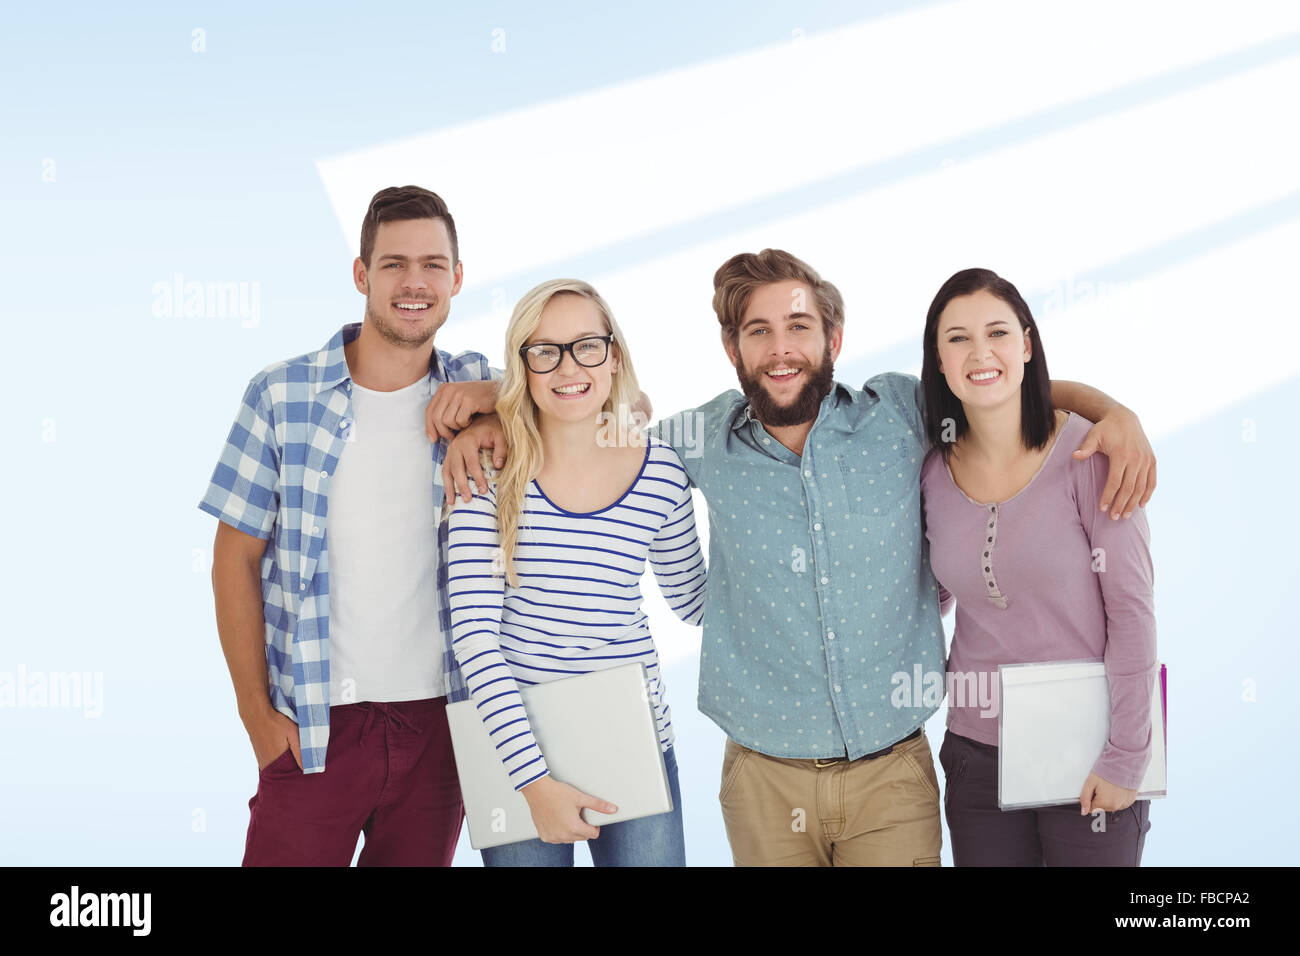 Composite image of portrait of smiling business people with arm around - Stock Image